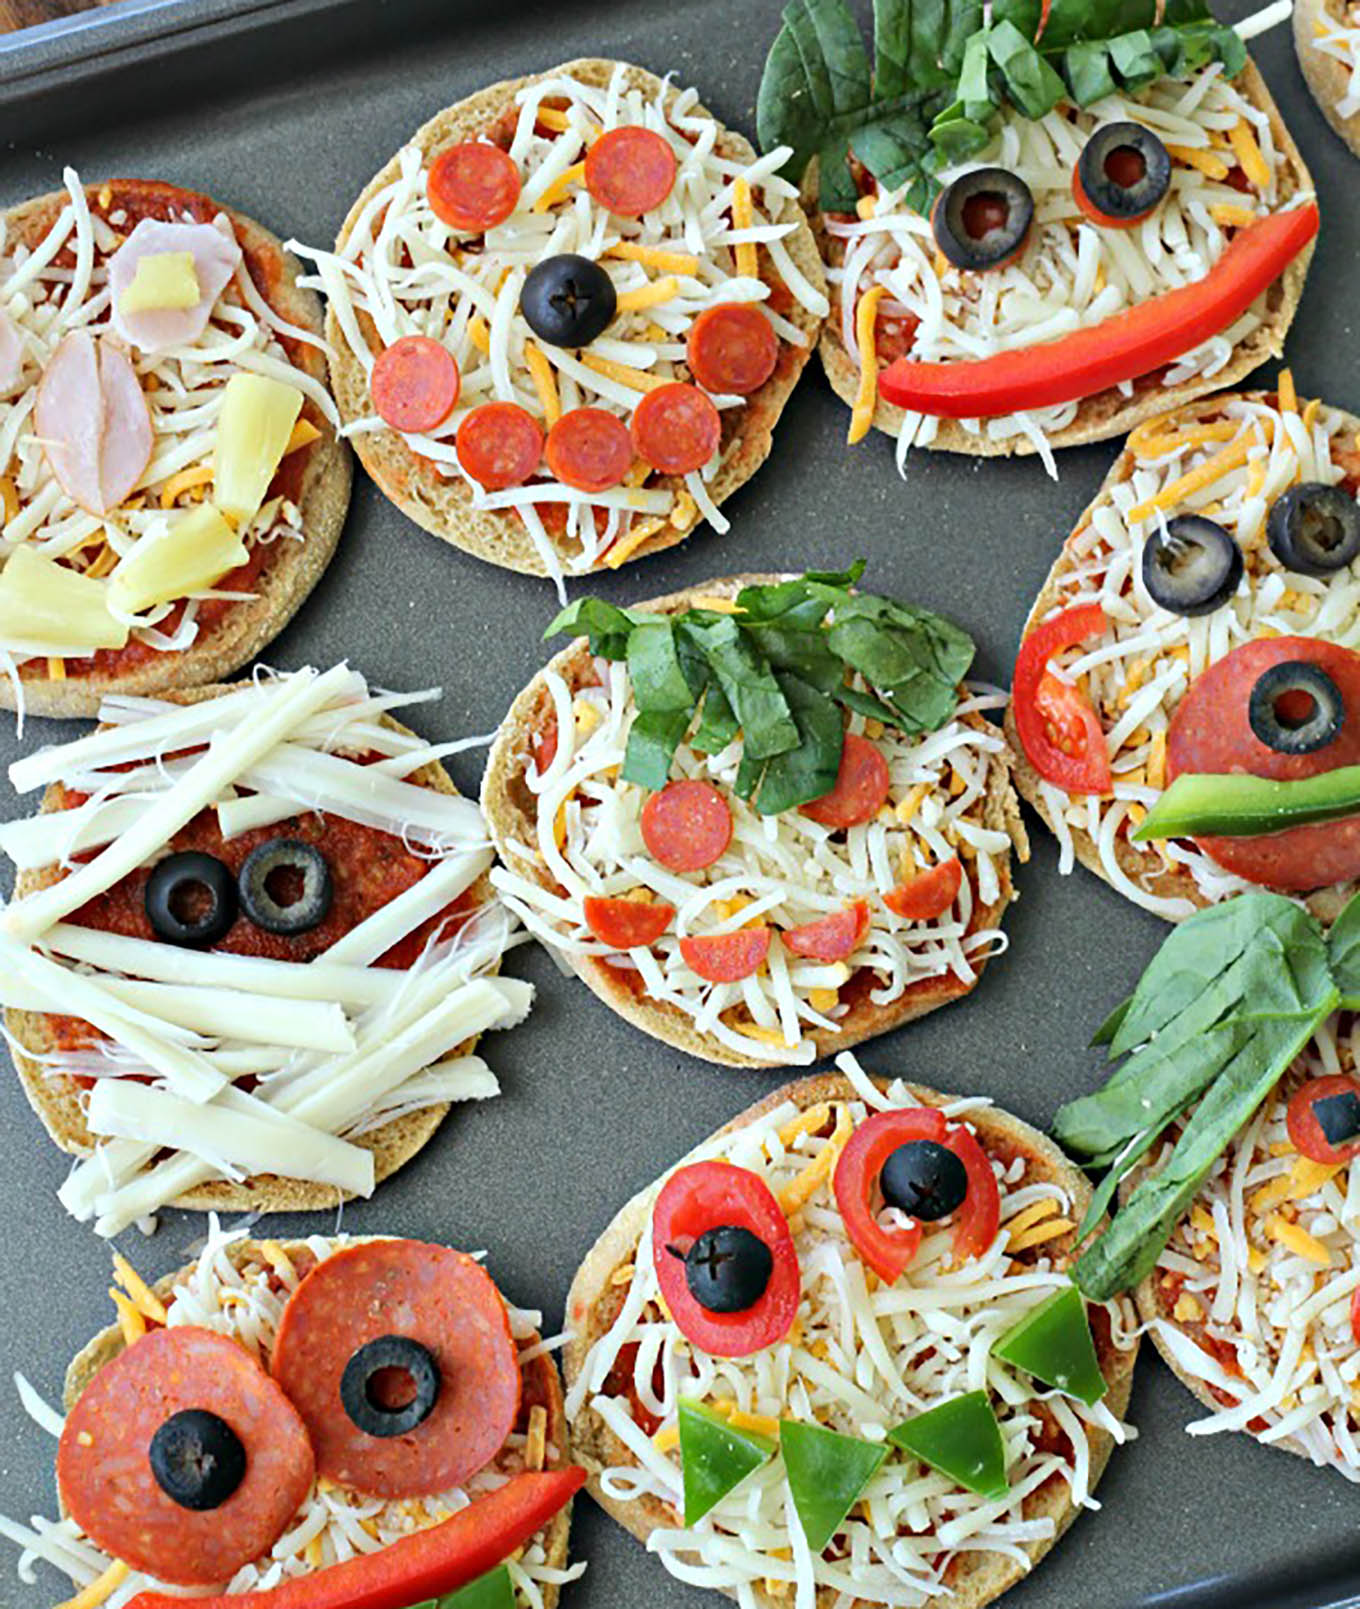 5 Fun Amp Yummy Recipes For The Kids